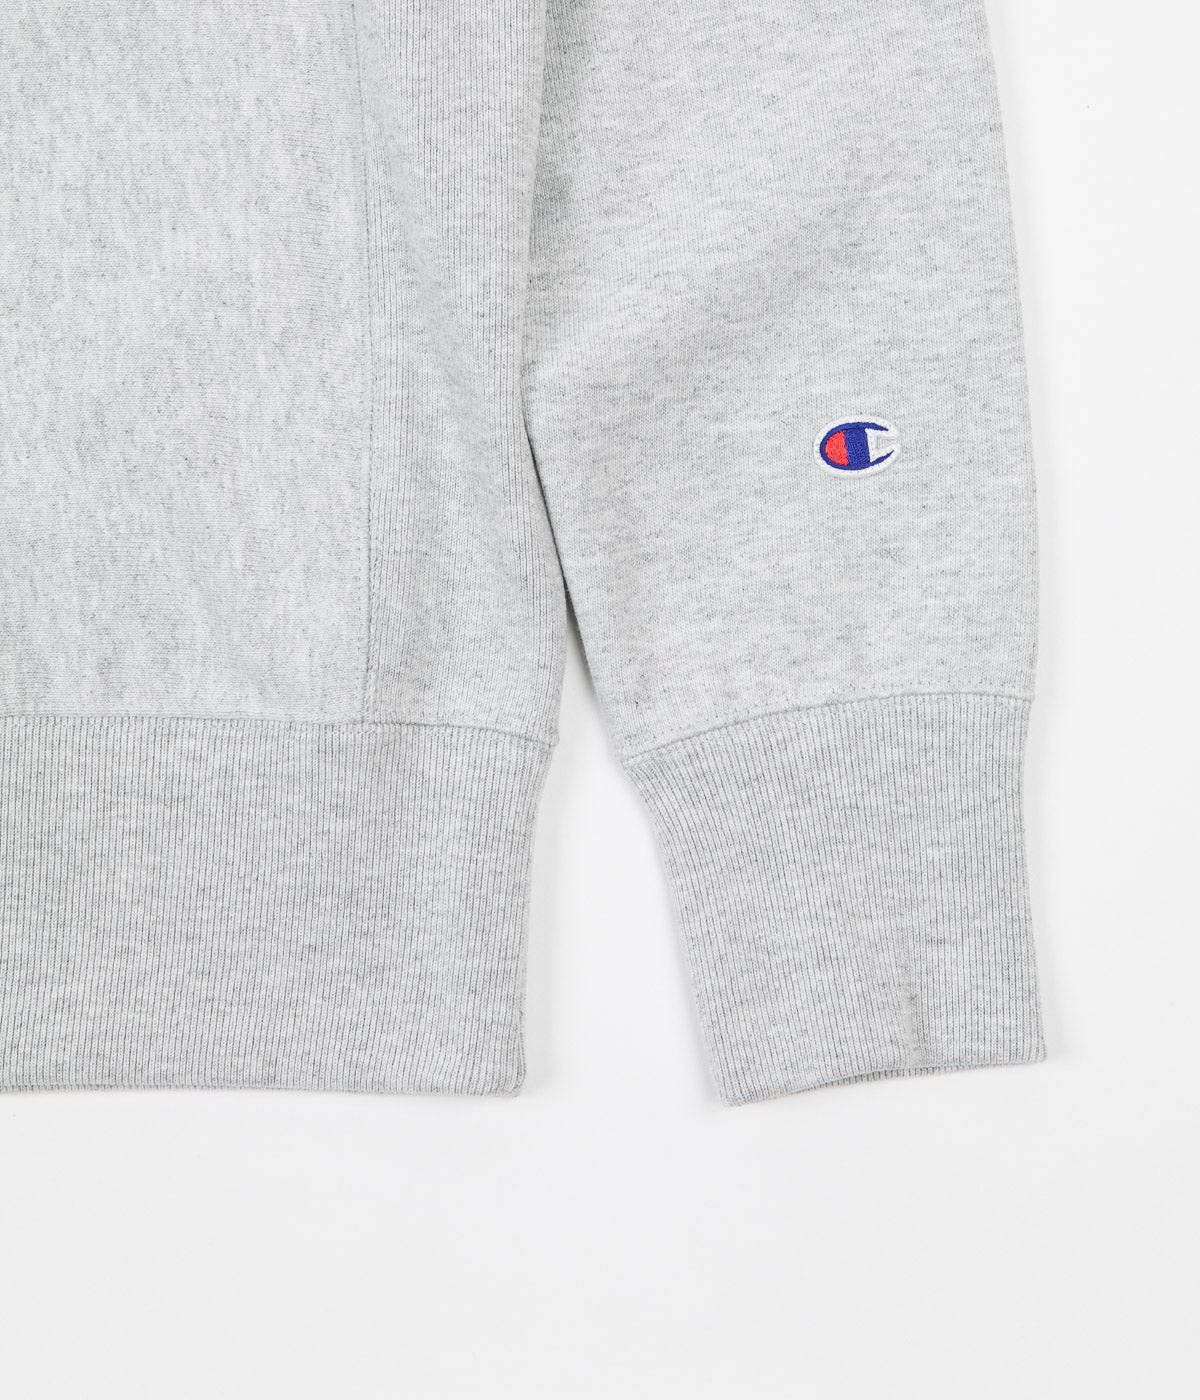 Champion Reverse Weave Triple Script Crewneck Sweatshirt - Grey